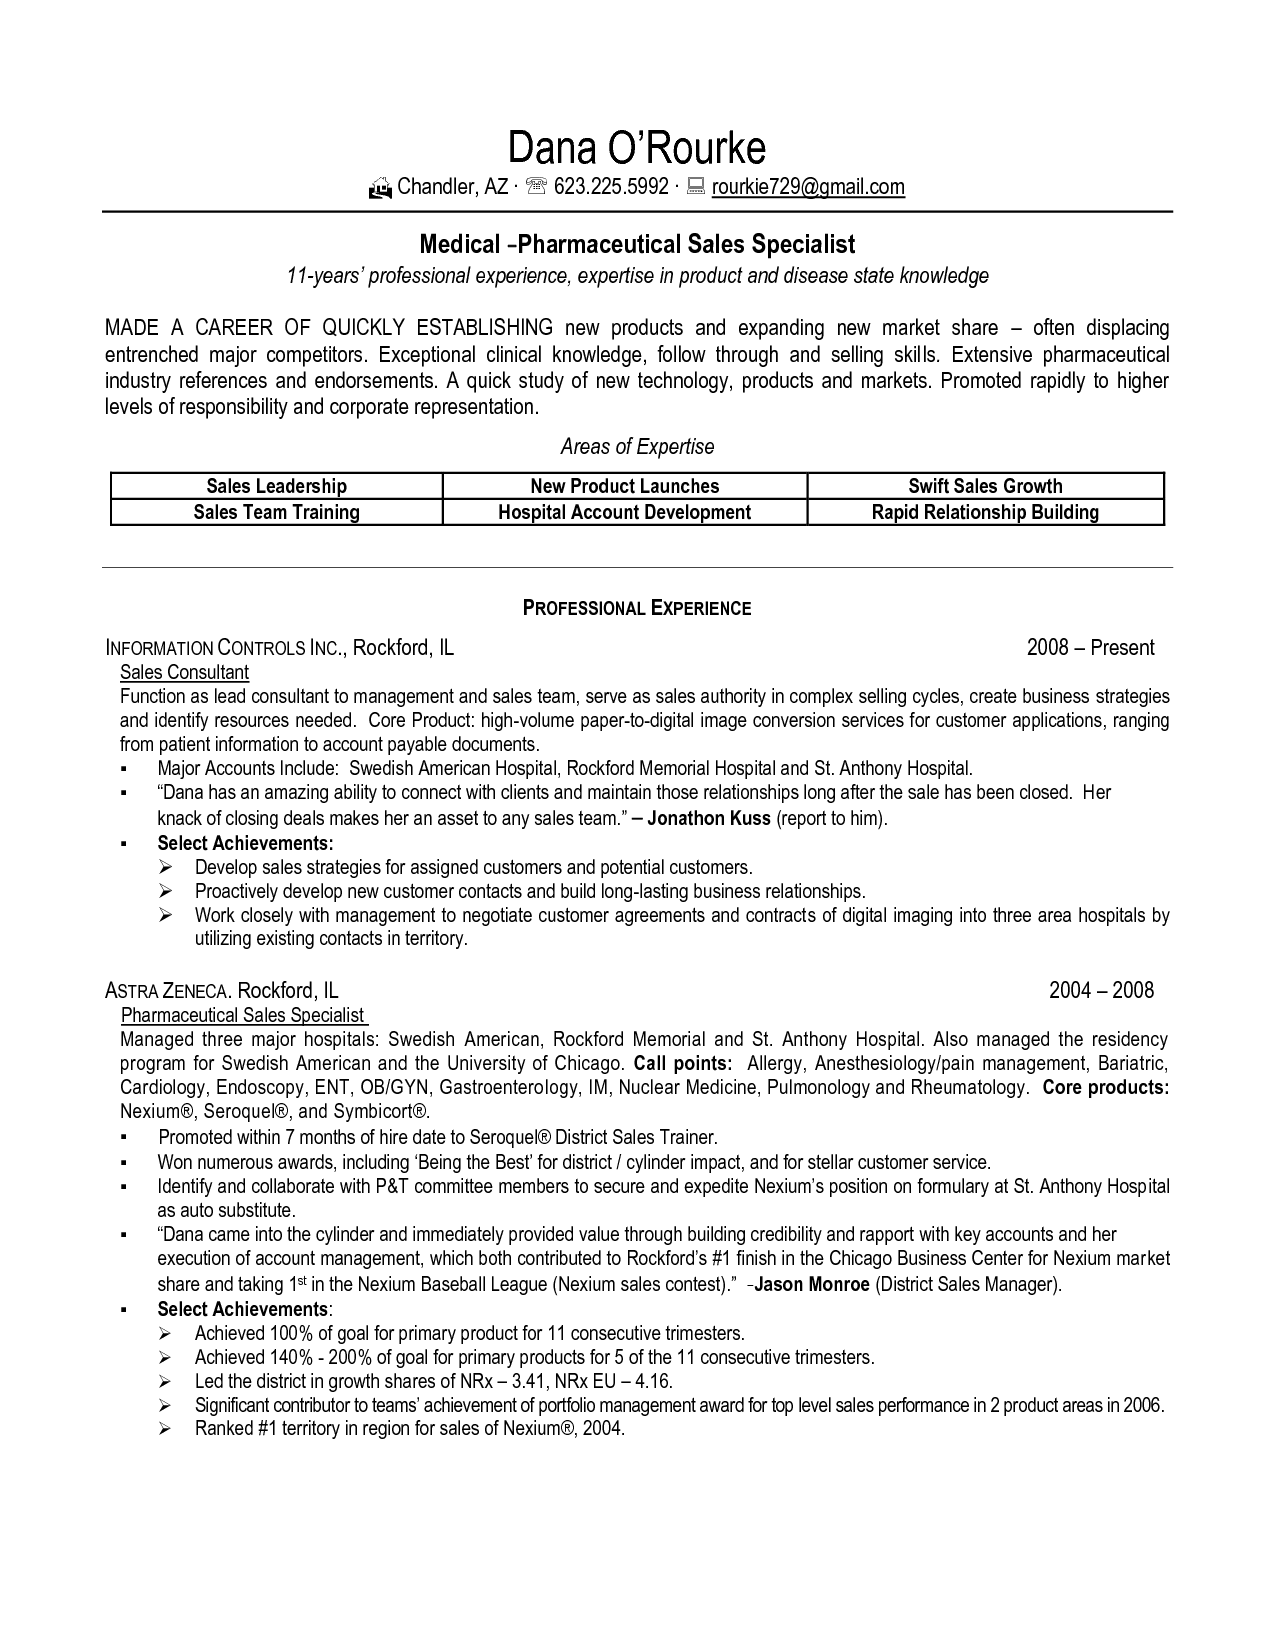 Sample Resume For Pharmaceutical Industry Sample Resume For Pharmaceutical  Industry Sample Resume For Pharmaceutical Sales Sample Resume For Pharmacy  ...